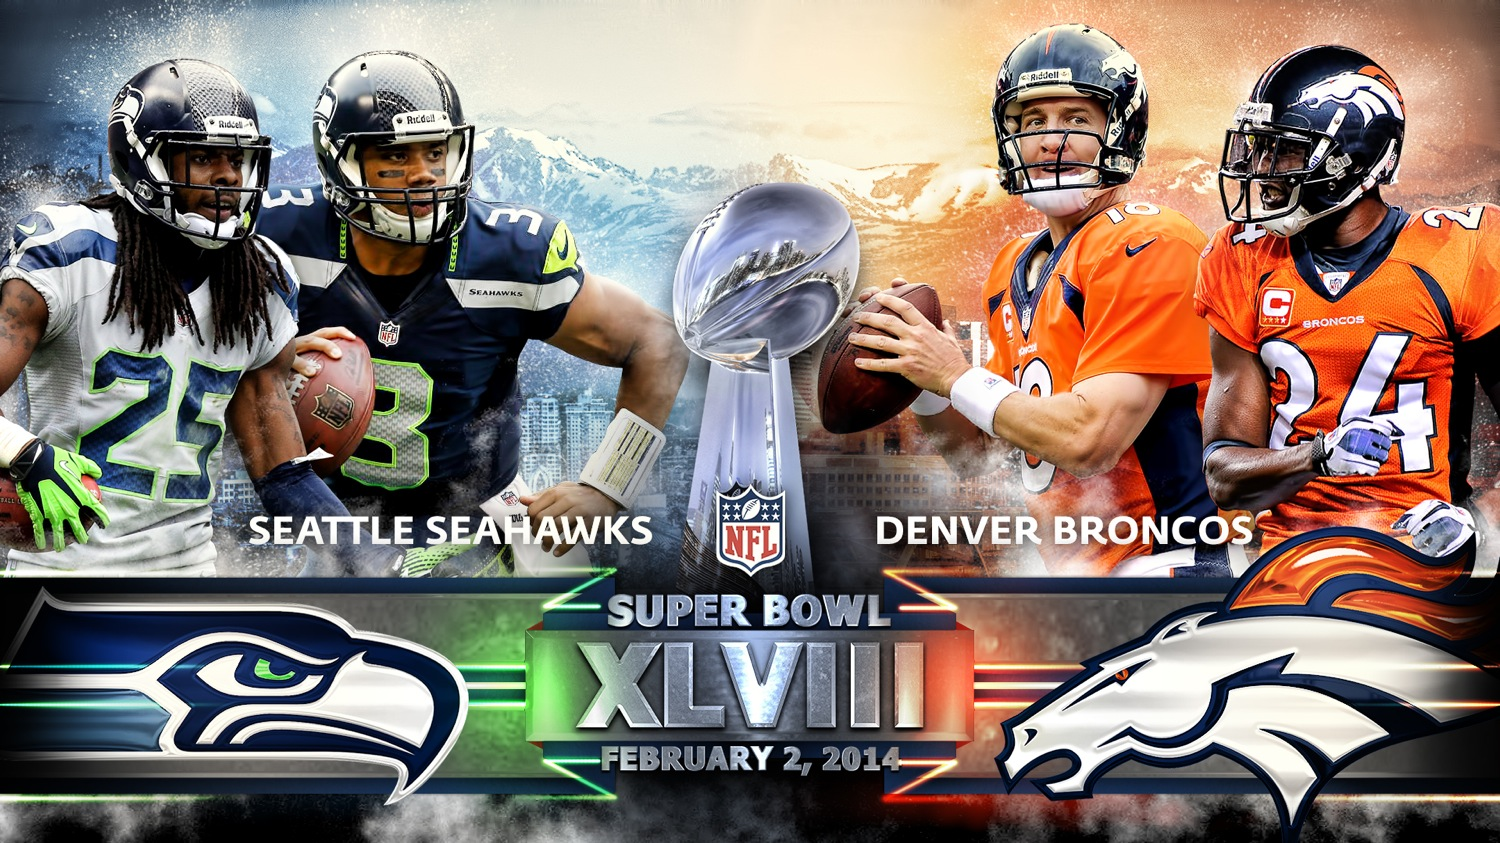 Super bowl xlviii seattle seahawks vs denver broncos shaw sports voltagebd Images